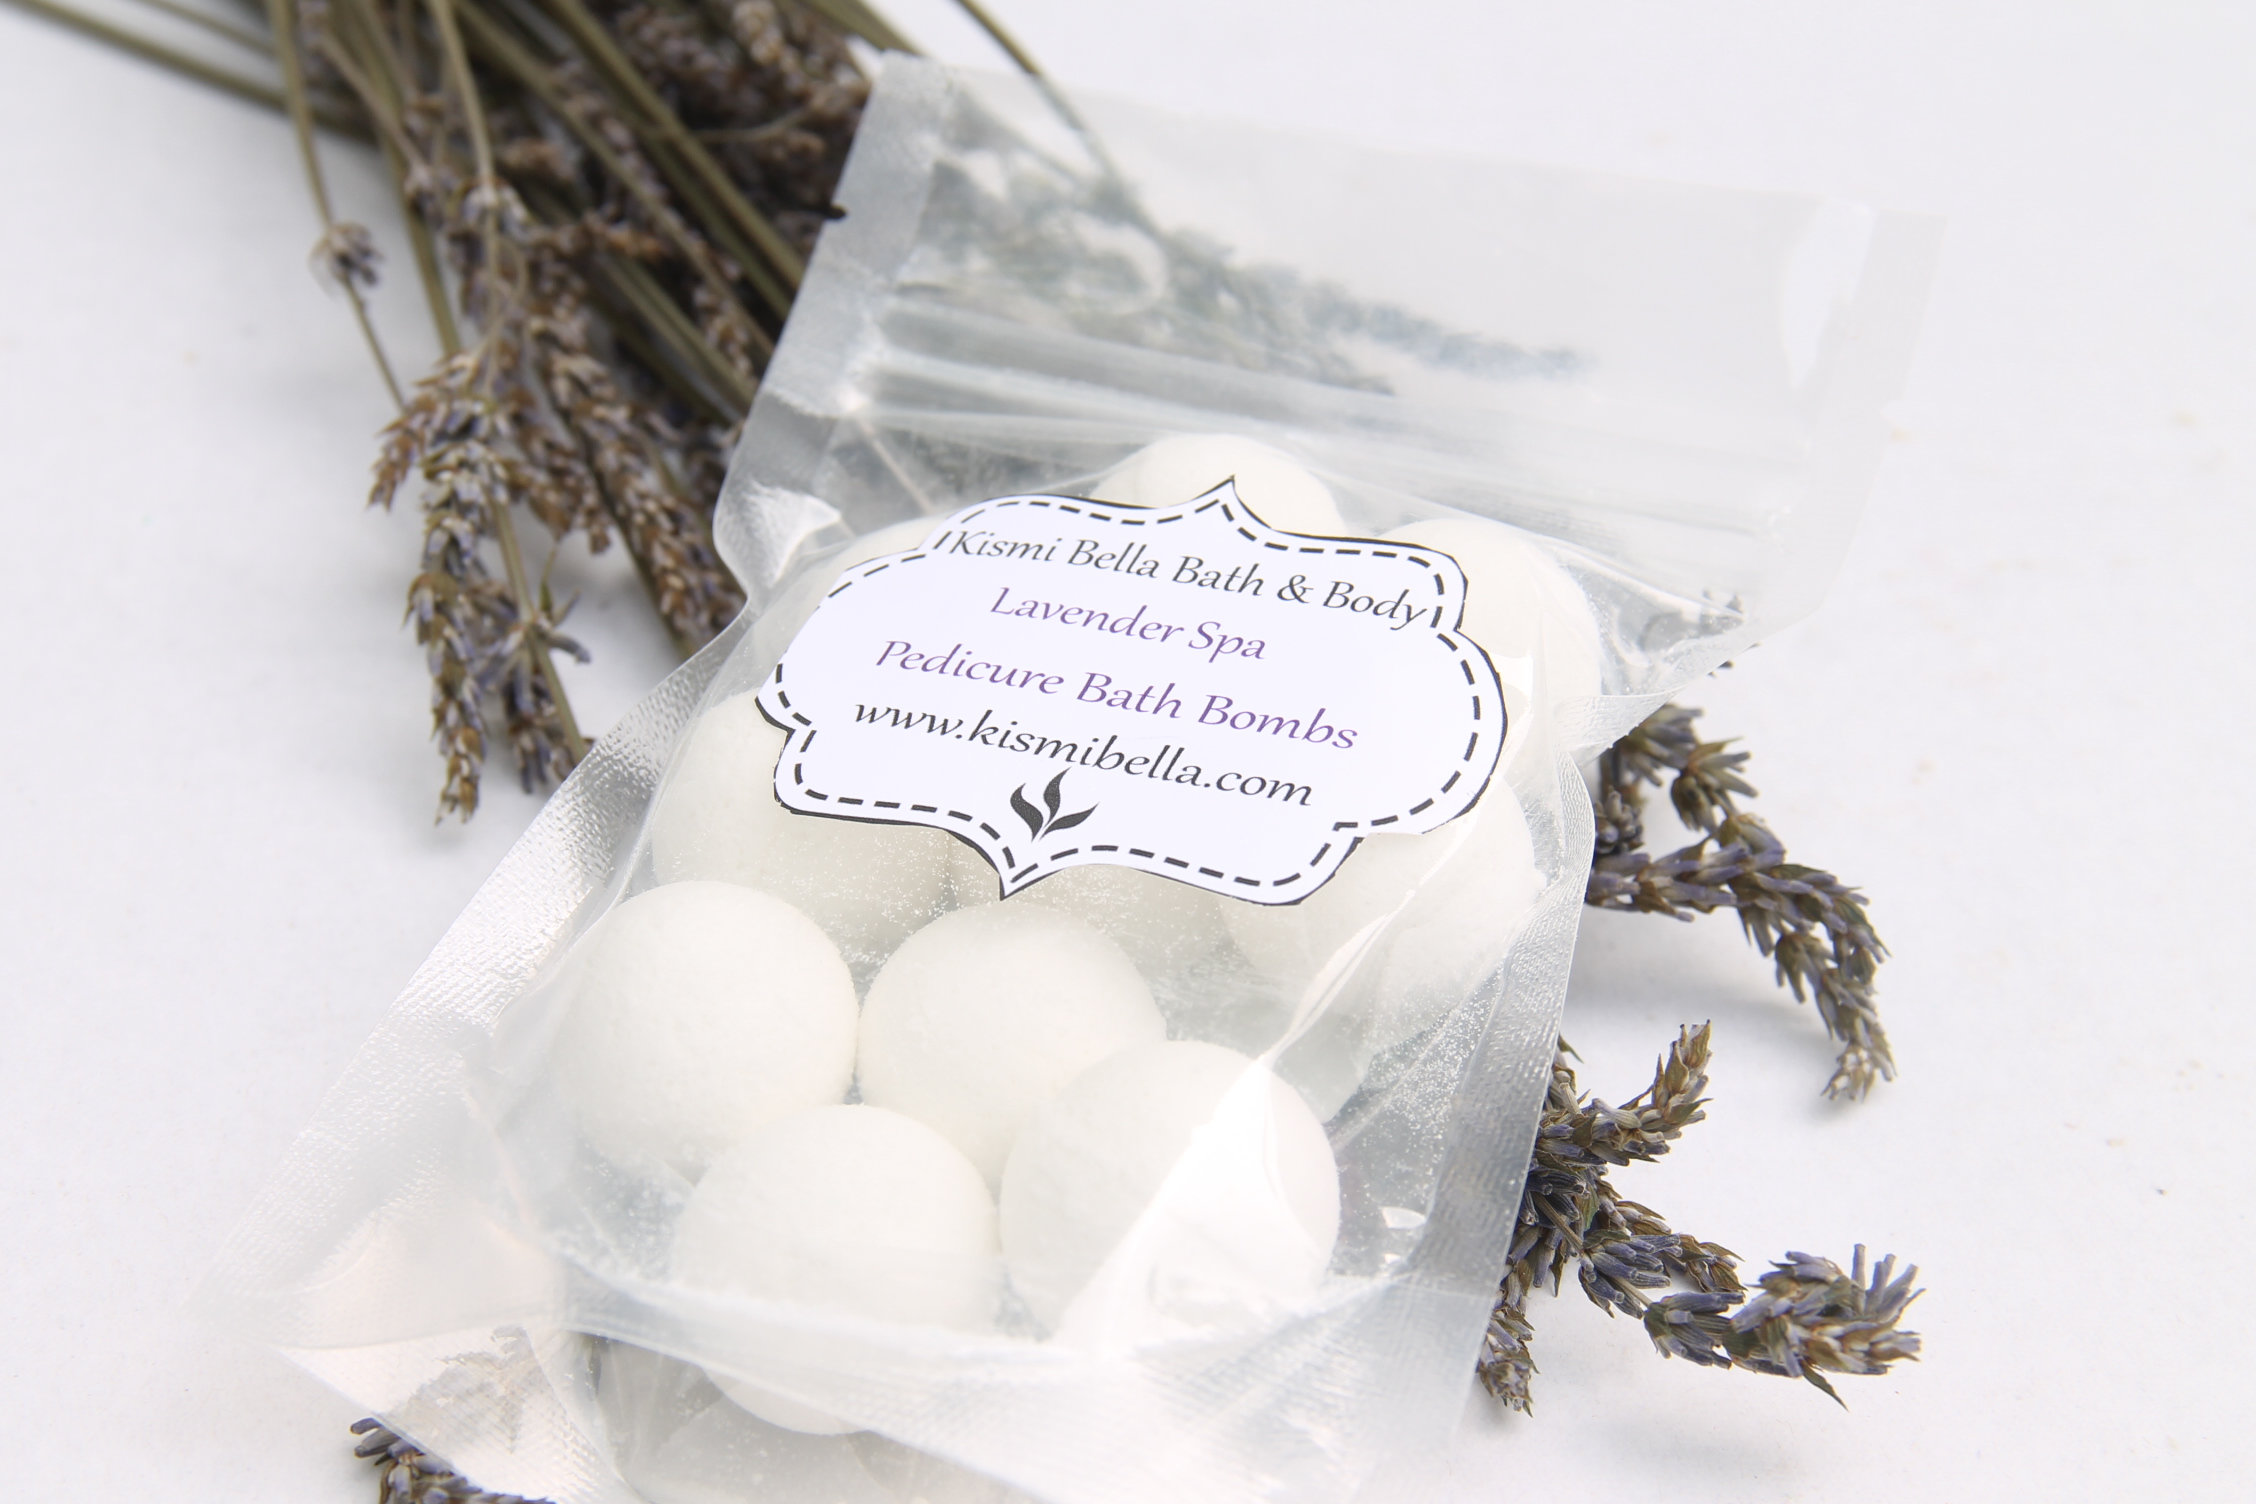 Pedicure Bath Bombs Mini Bath Bombs Spa Gift Set Lavender Spa Kismibellaskincare